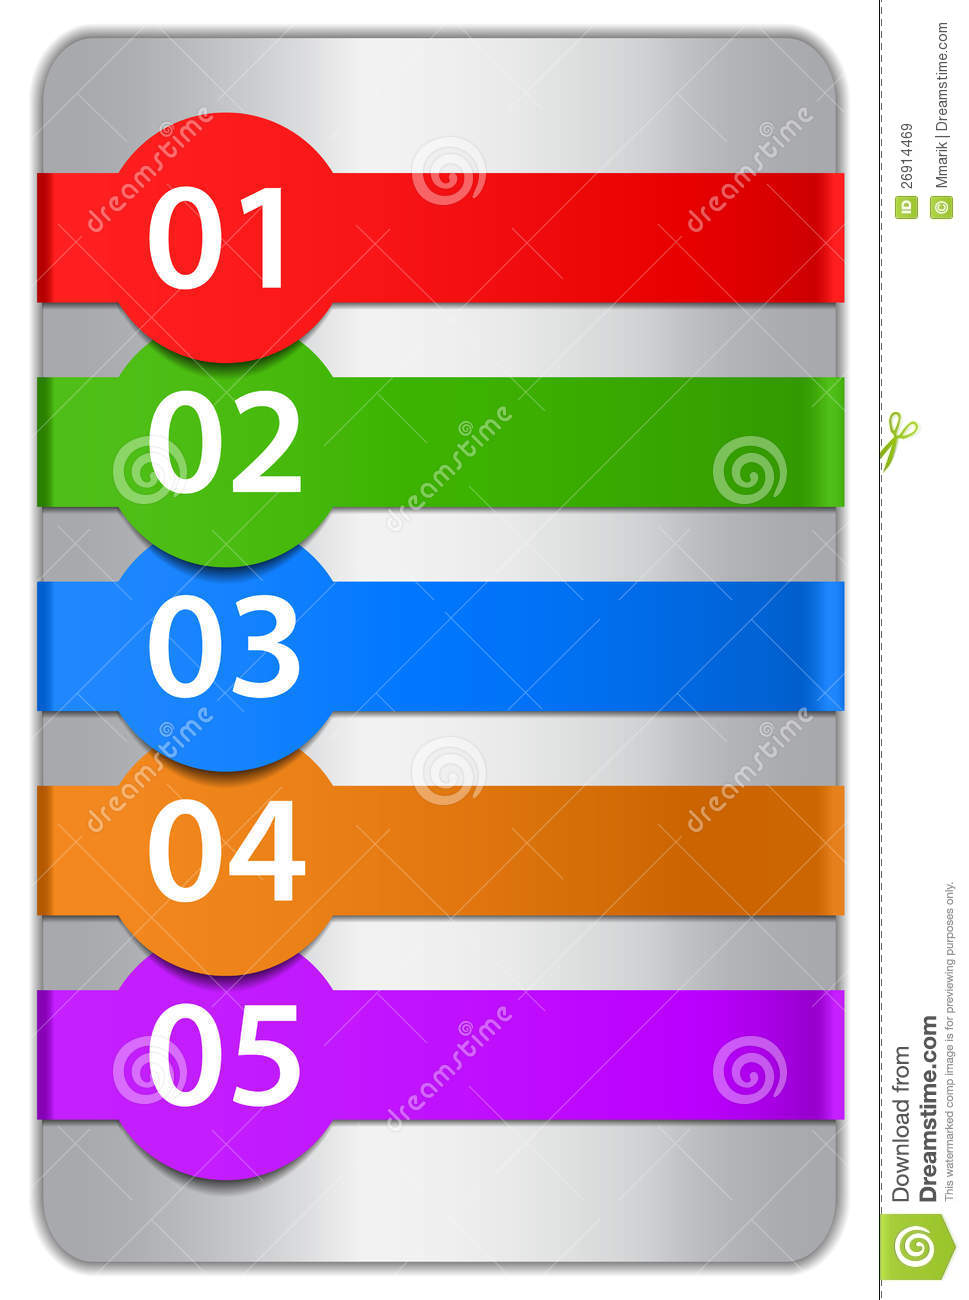 Numbered Design Templates Royalty Free Stock Images - Image: 26914469